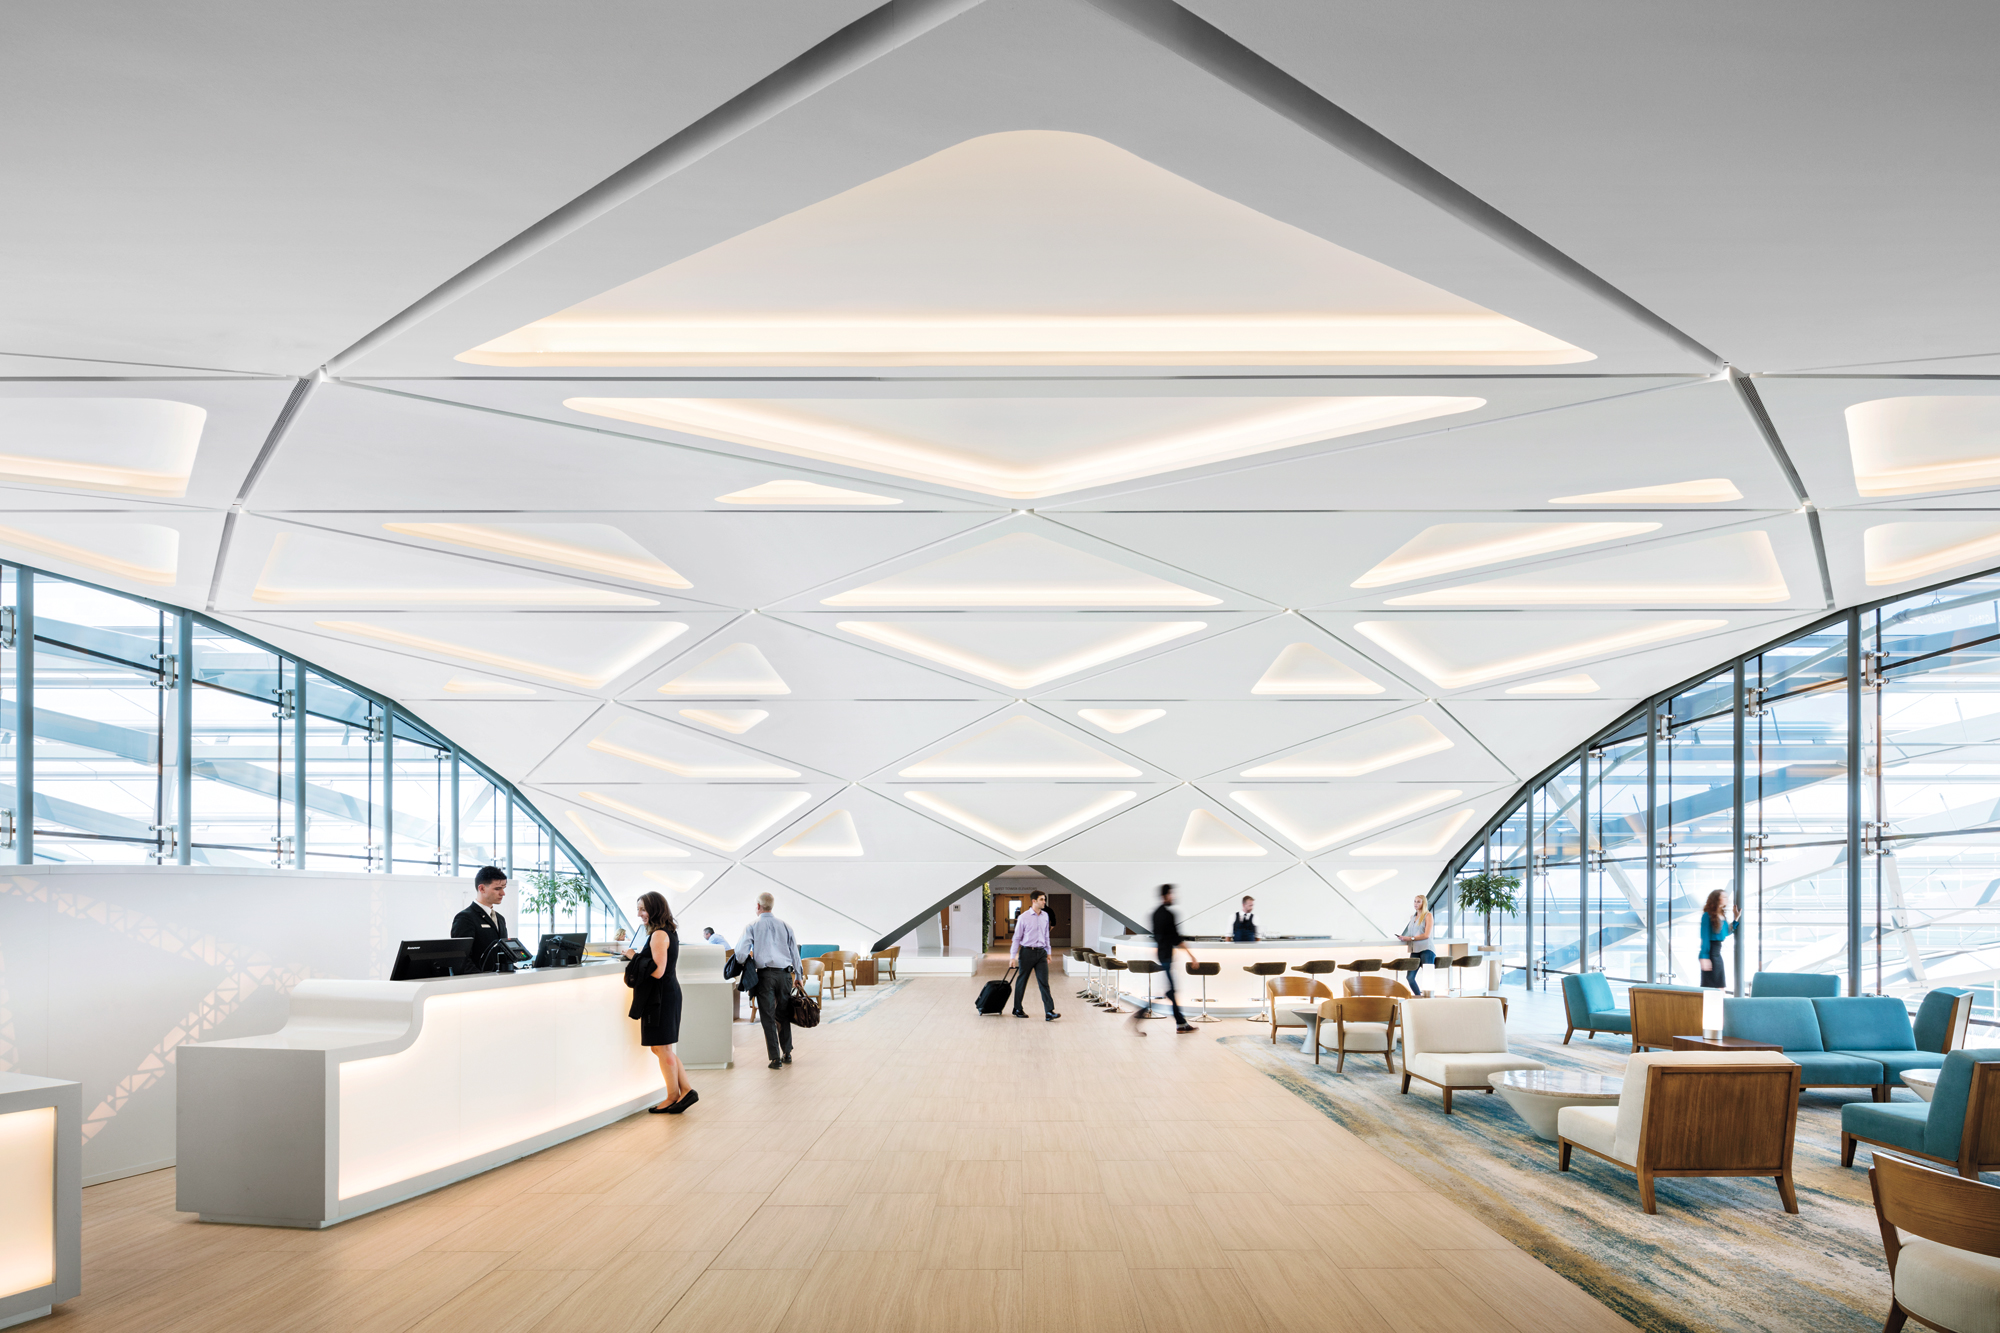 Westin Denver International Airport By Gensler 2016 Best Of Year Winner For Transportation